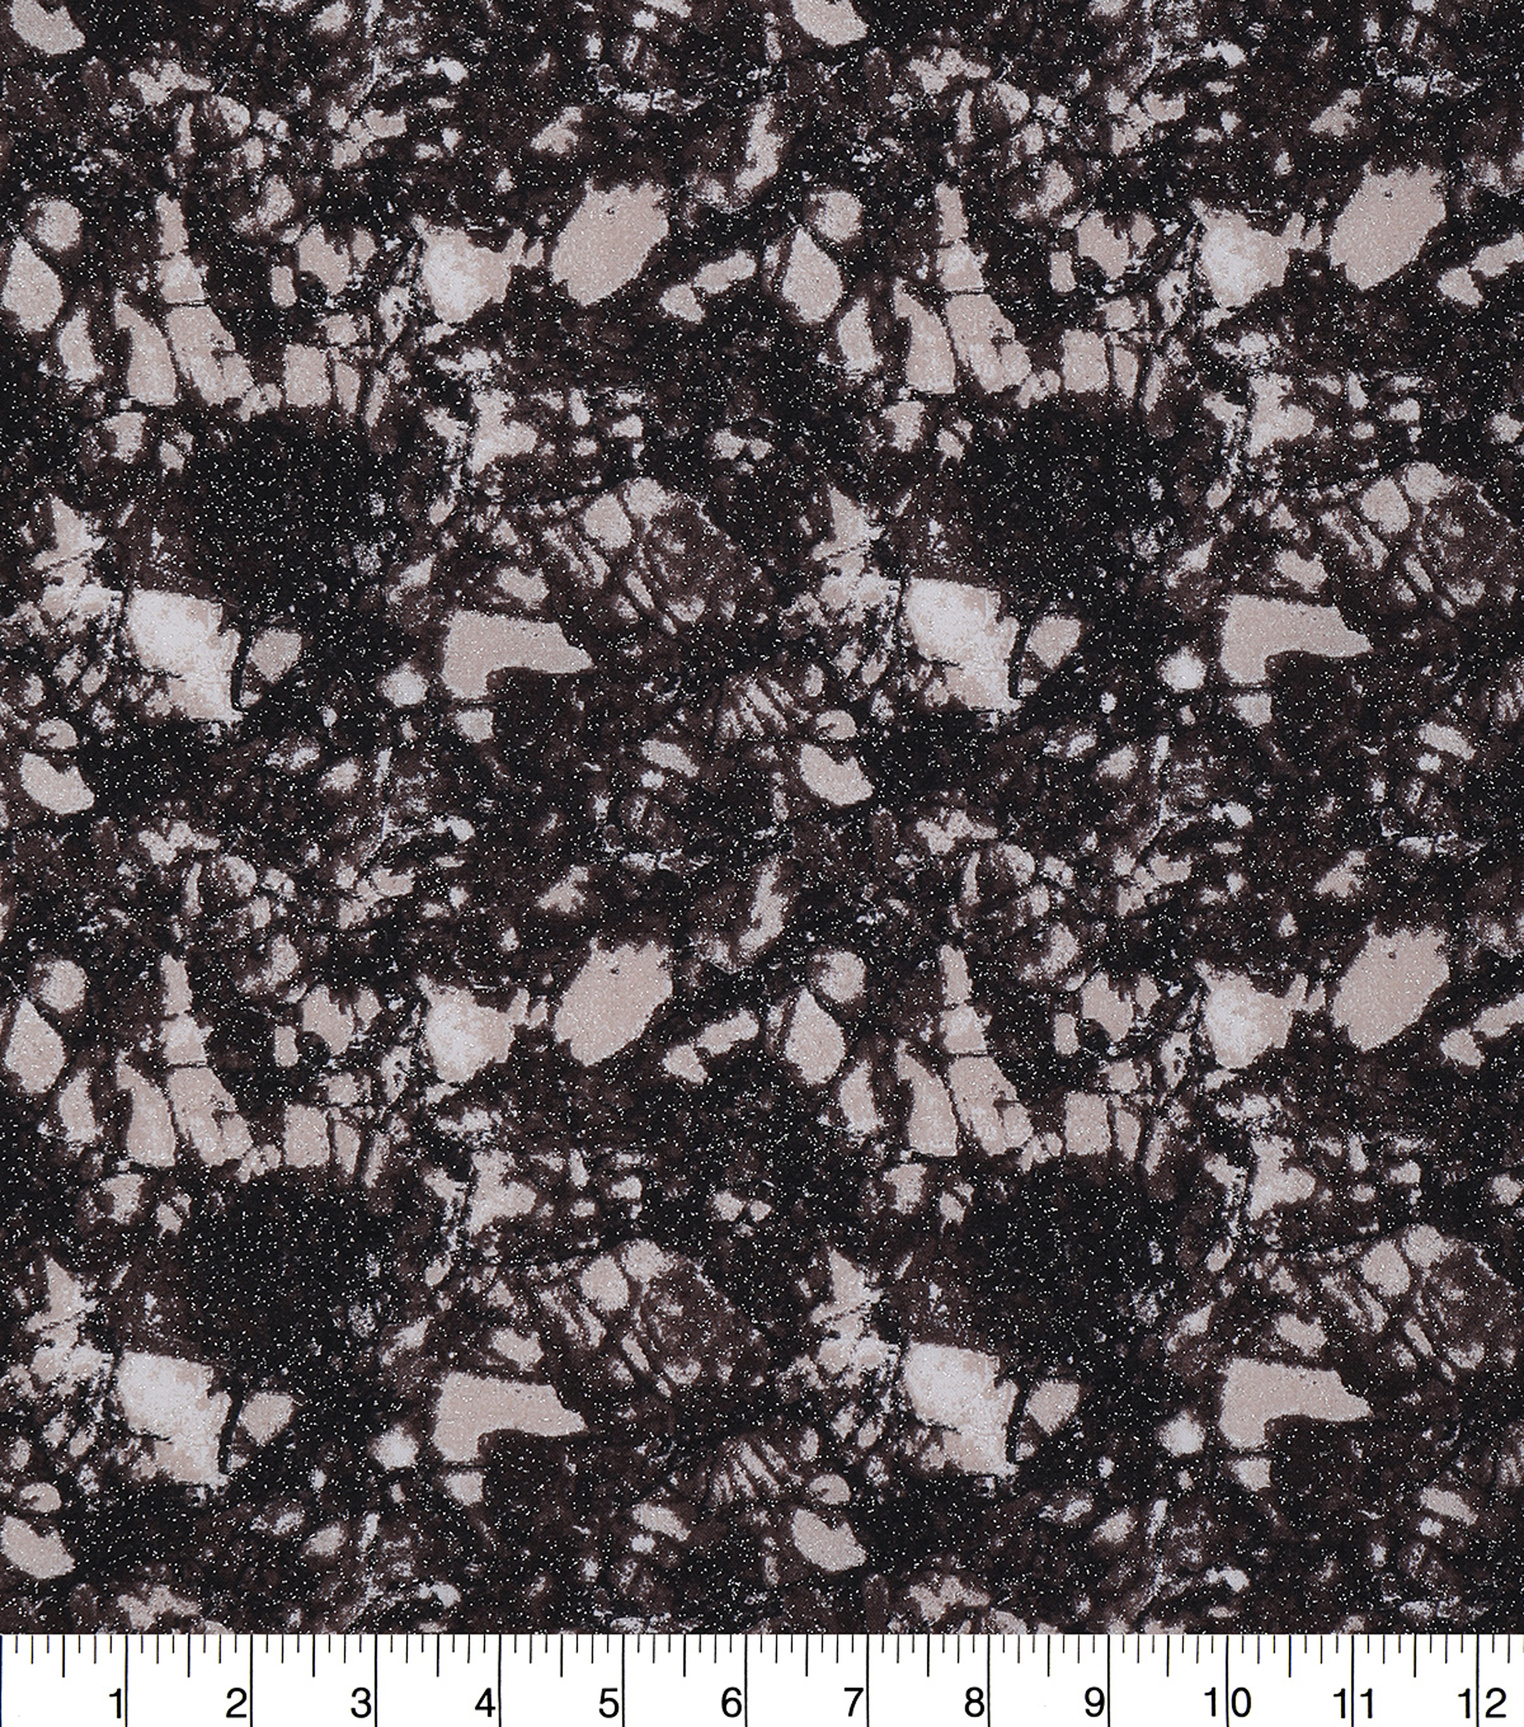 Keepsake Calico Glitter Cotton Fabric 43\u0027\u0027-Brown Snake Skin Crackle